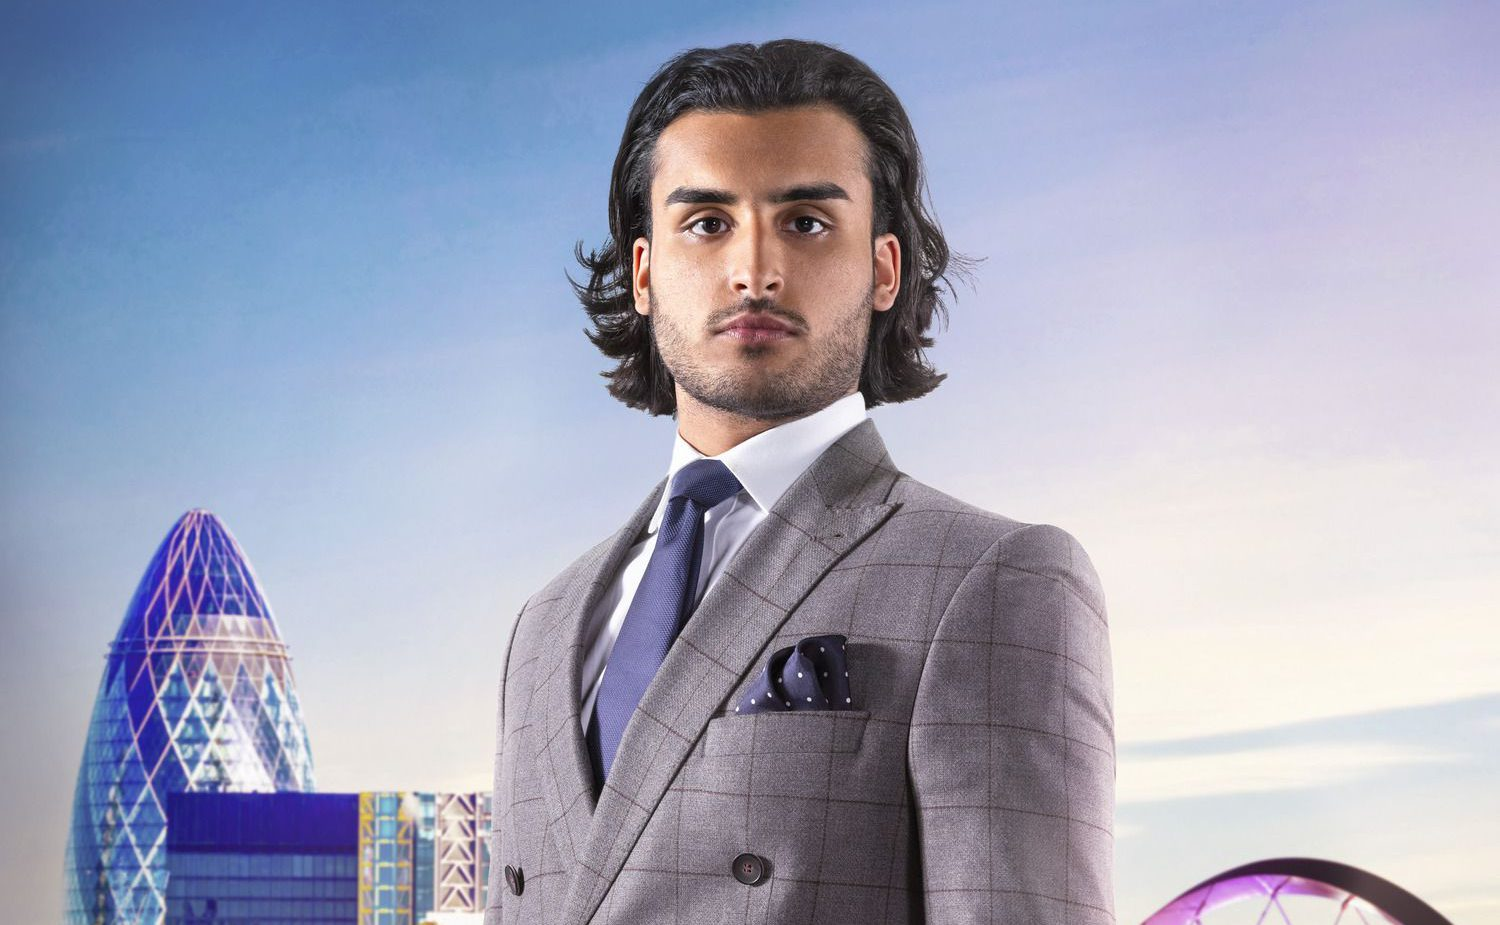 What is Pangaea – the name Kurran chose for his airline in The Apprentice?